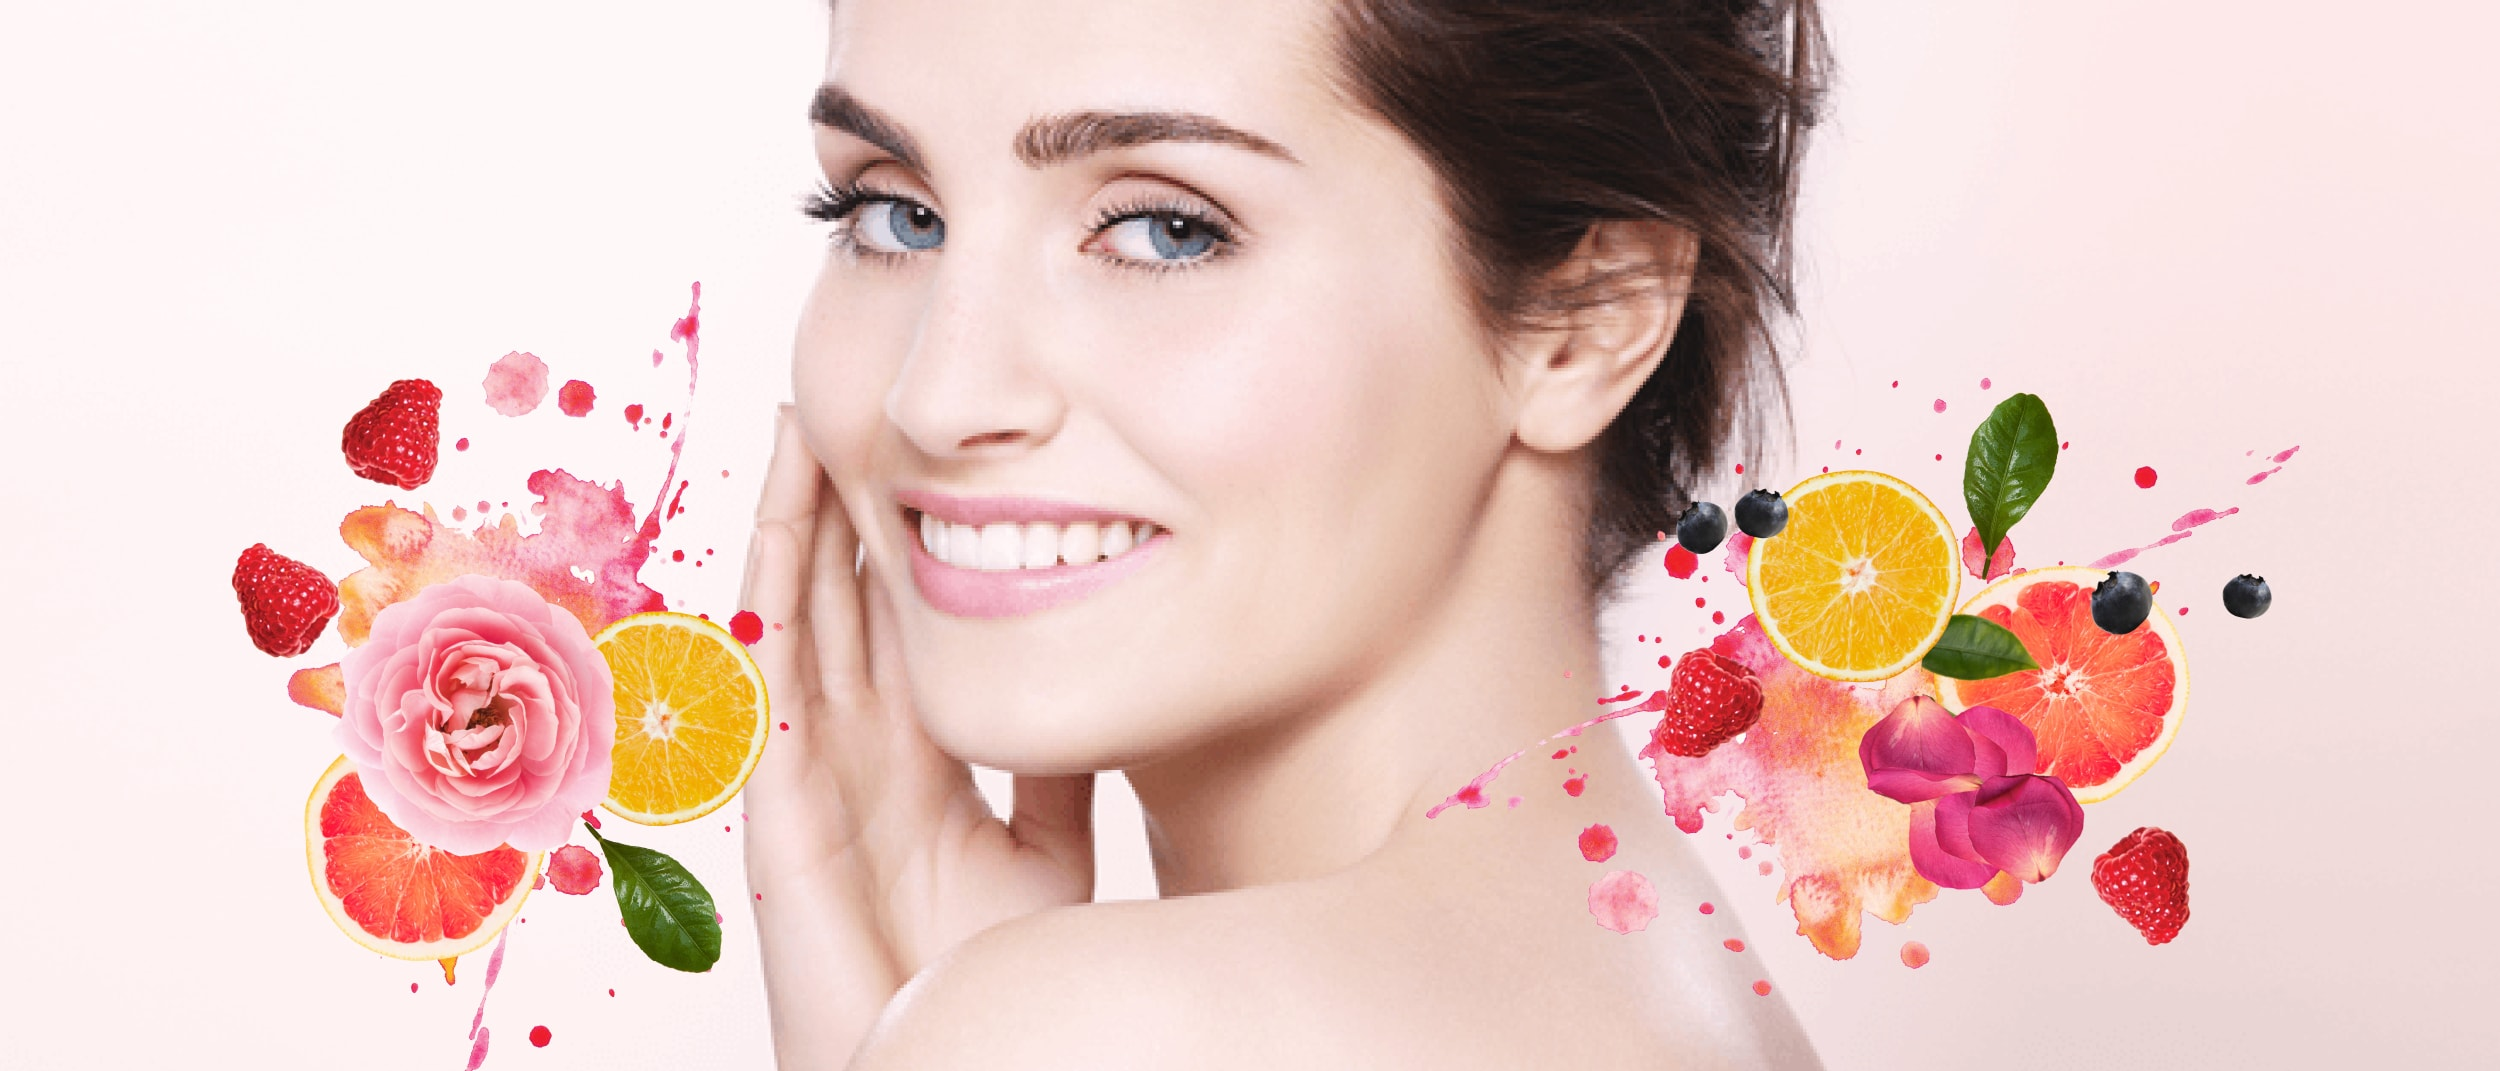 Nirvana Beauty Laser Clinics: Payot Institut Facial now $139